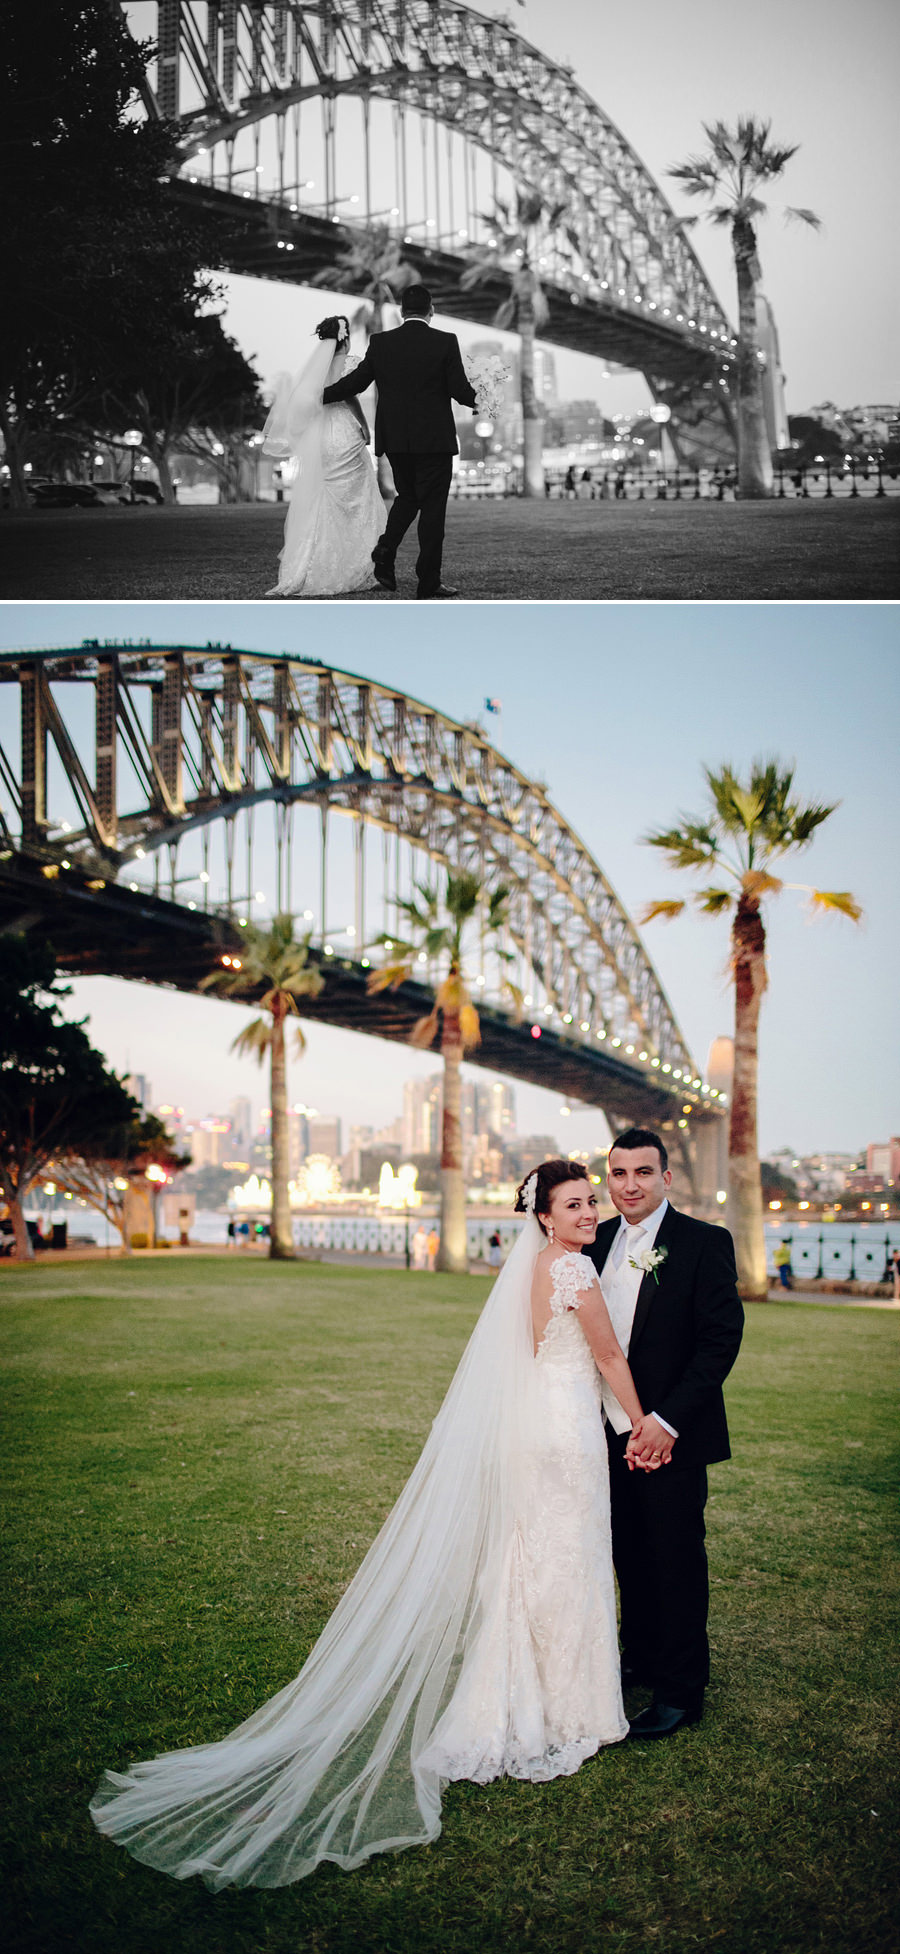 Sydney Wedding Photography: Bridal Party Portraits